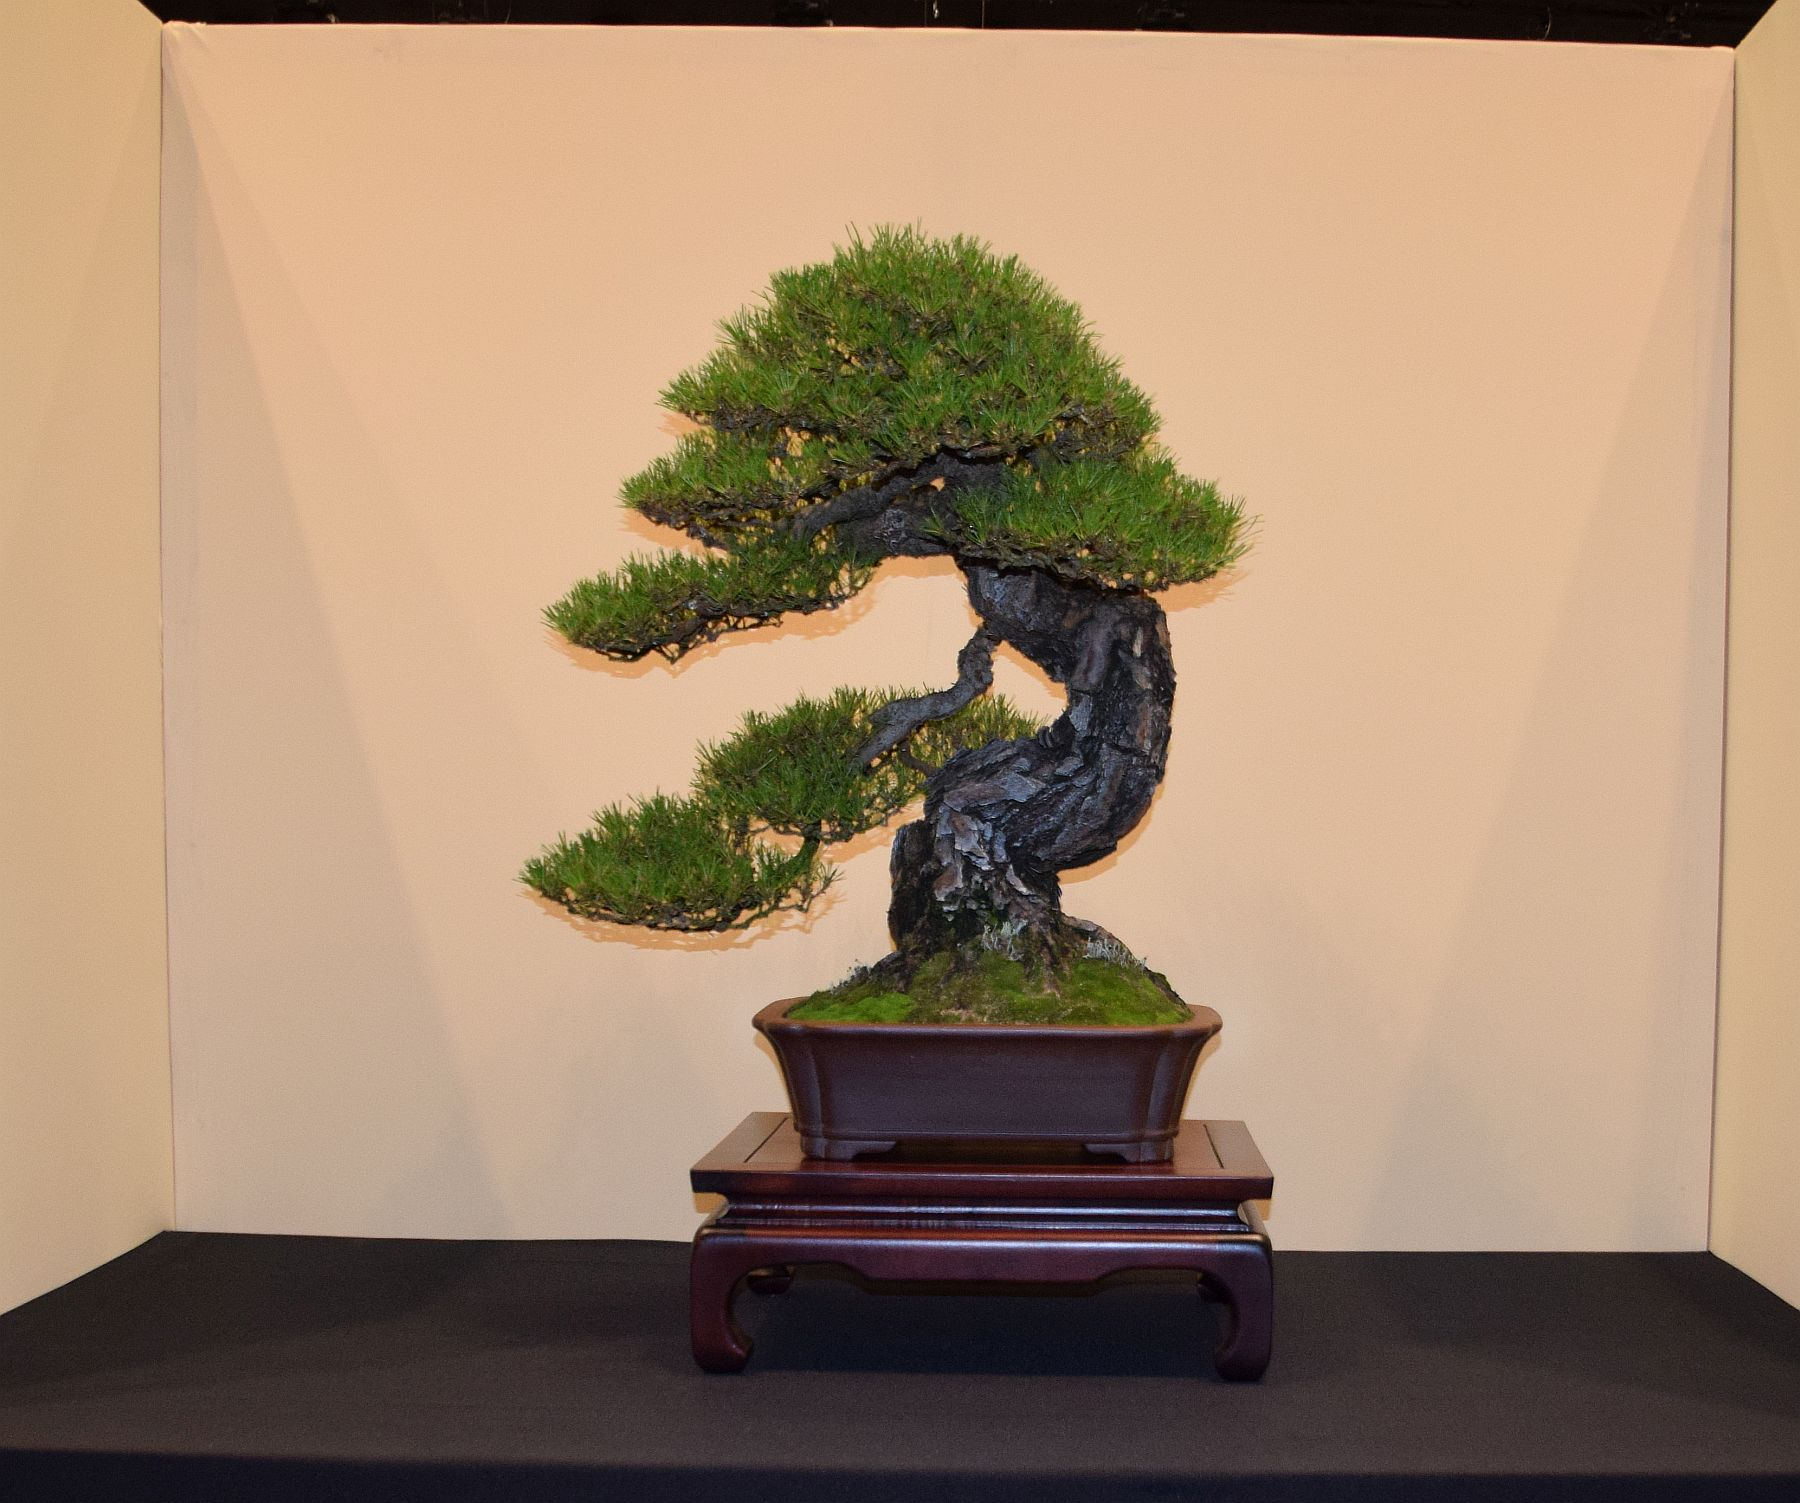 euk-bonsai-ten-2016-jp-polmans-collectie-015